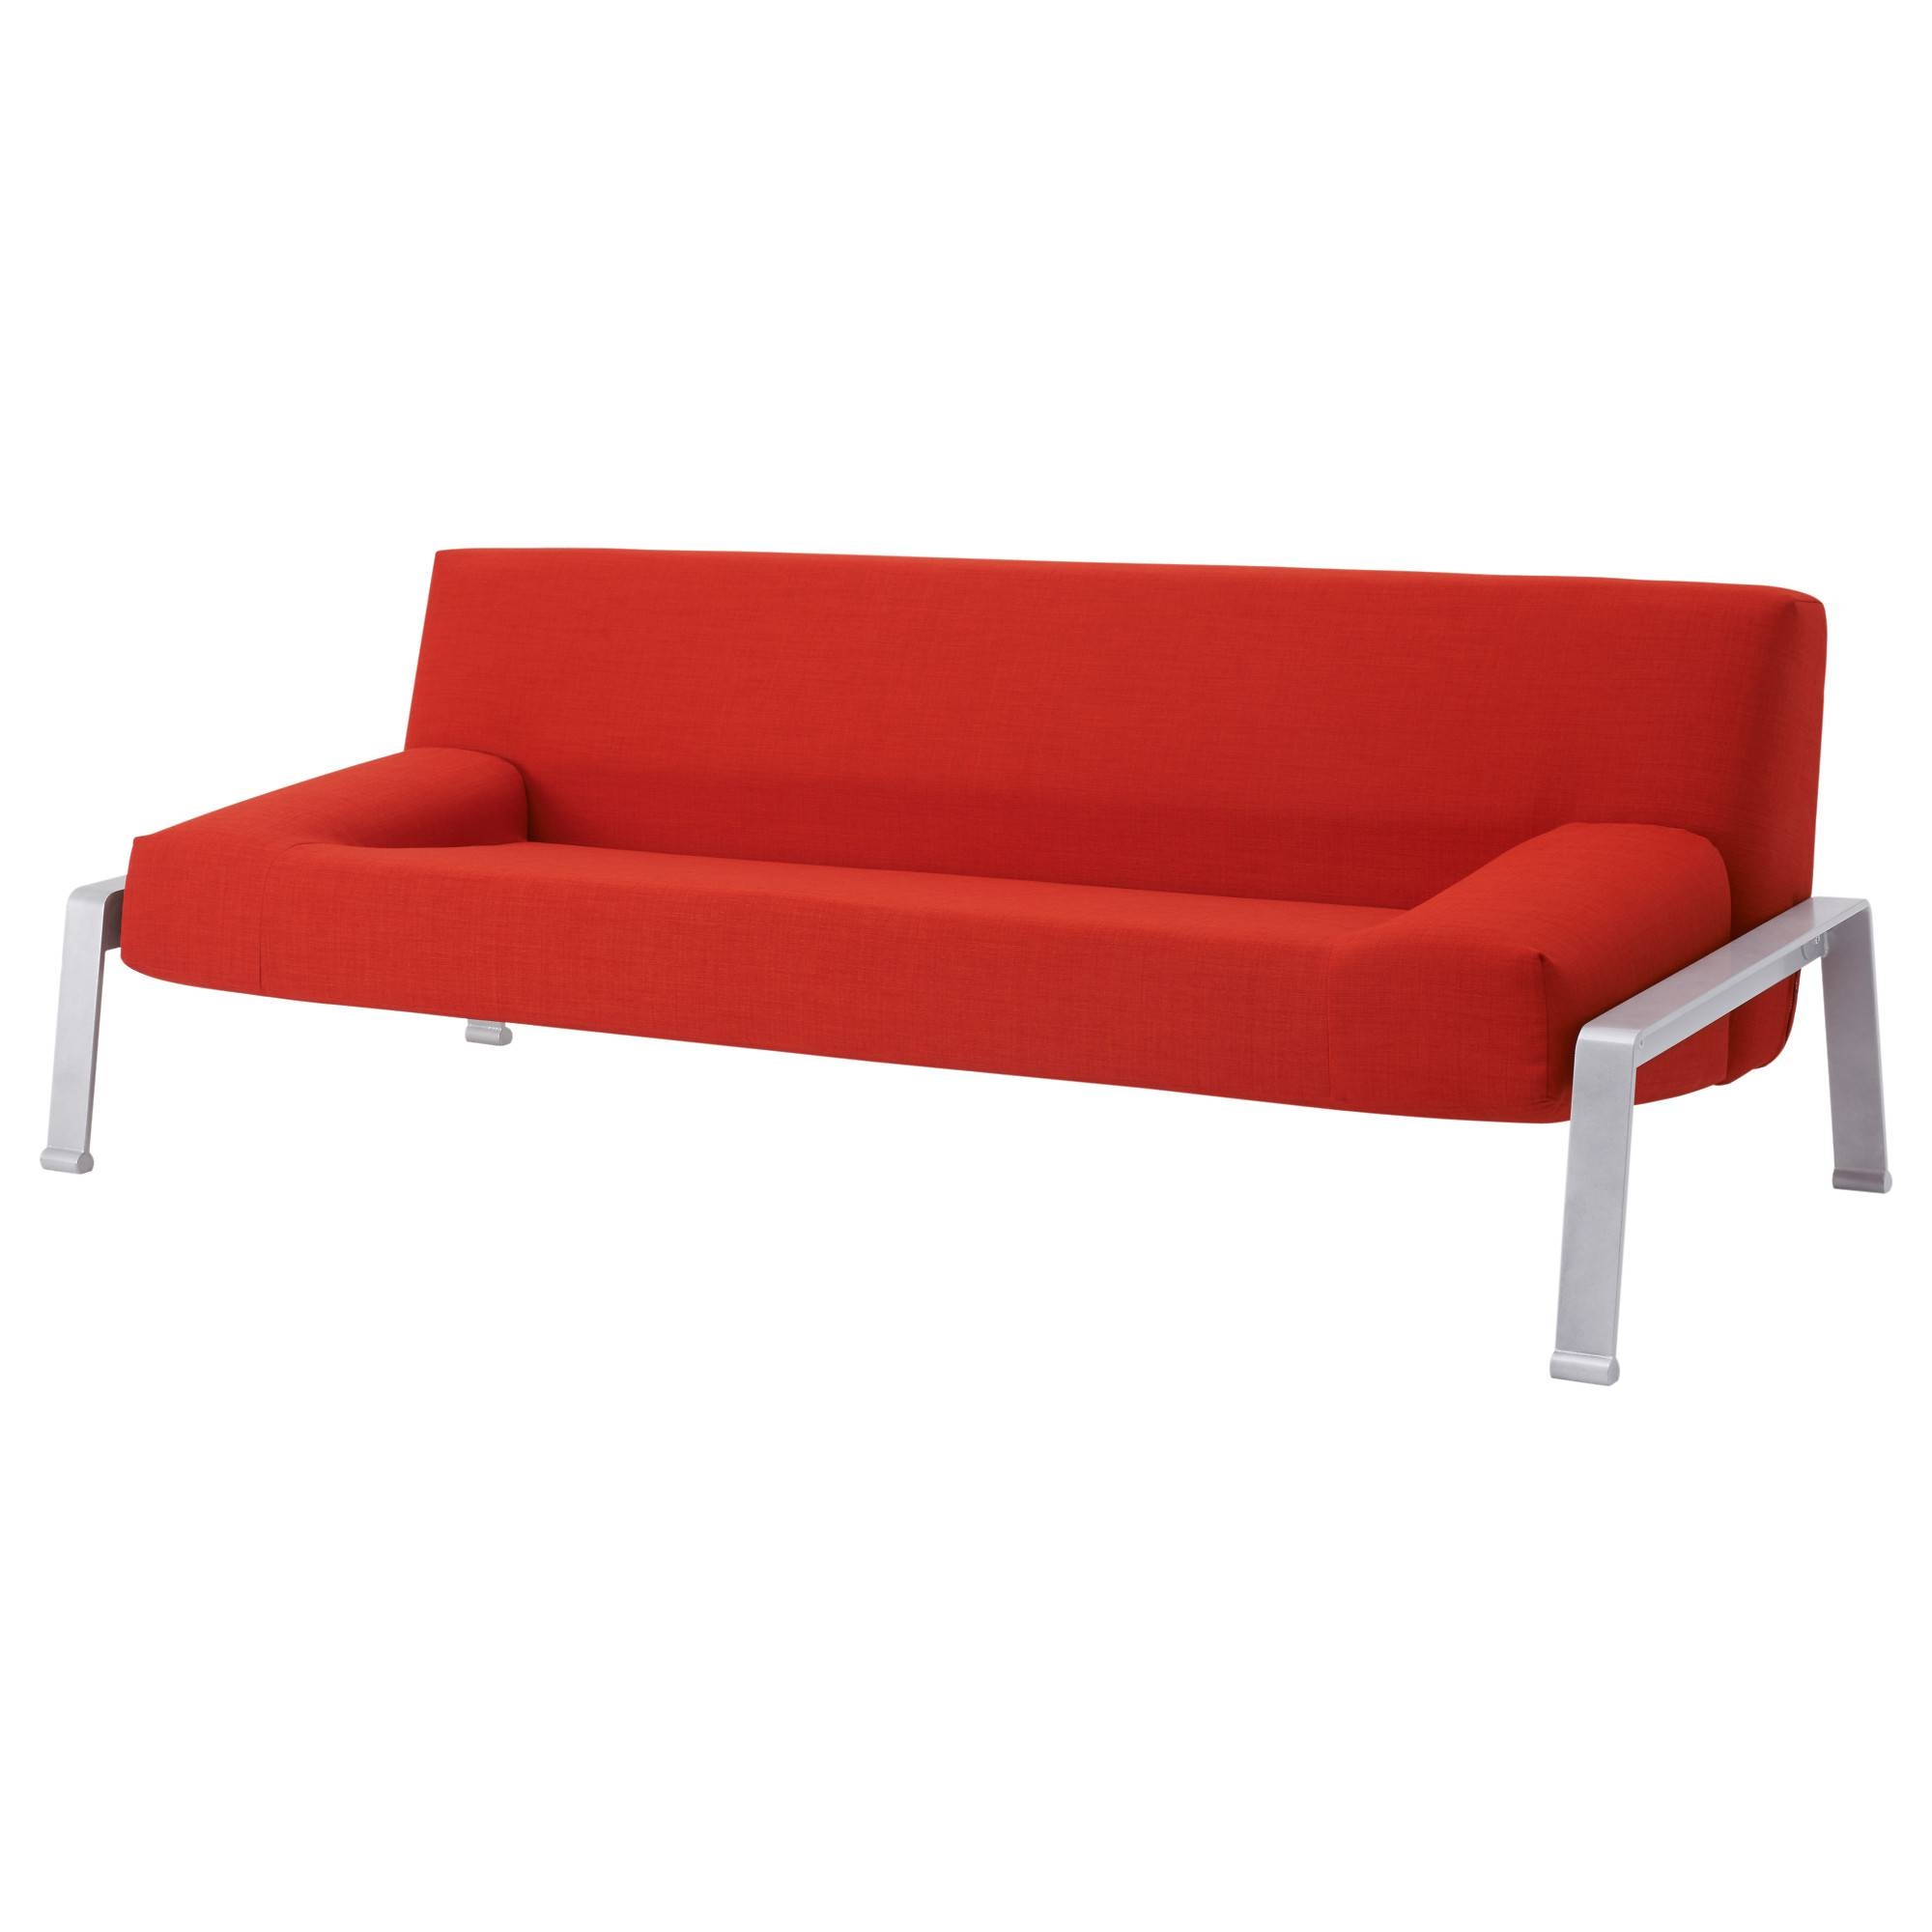 Sofa Beds & Futons - Ikea intended for Sofas With Beds (Image 19 of 30)